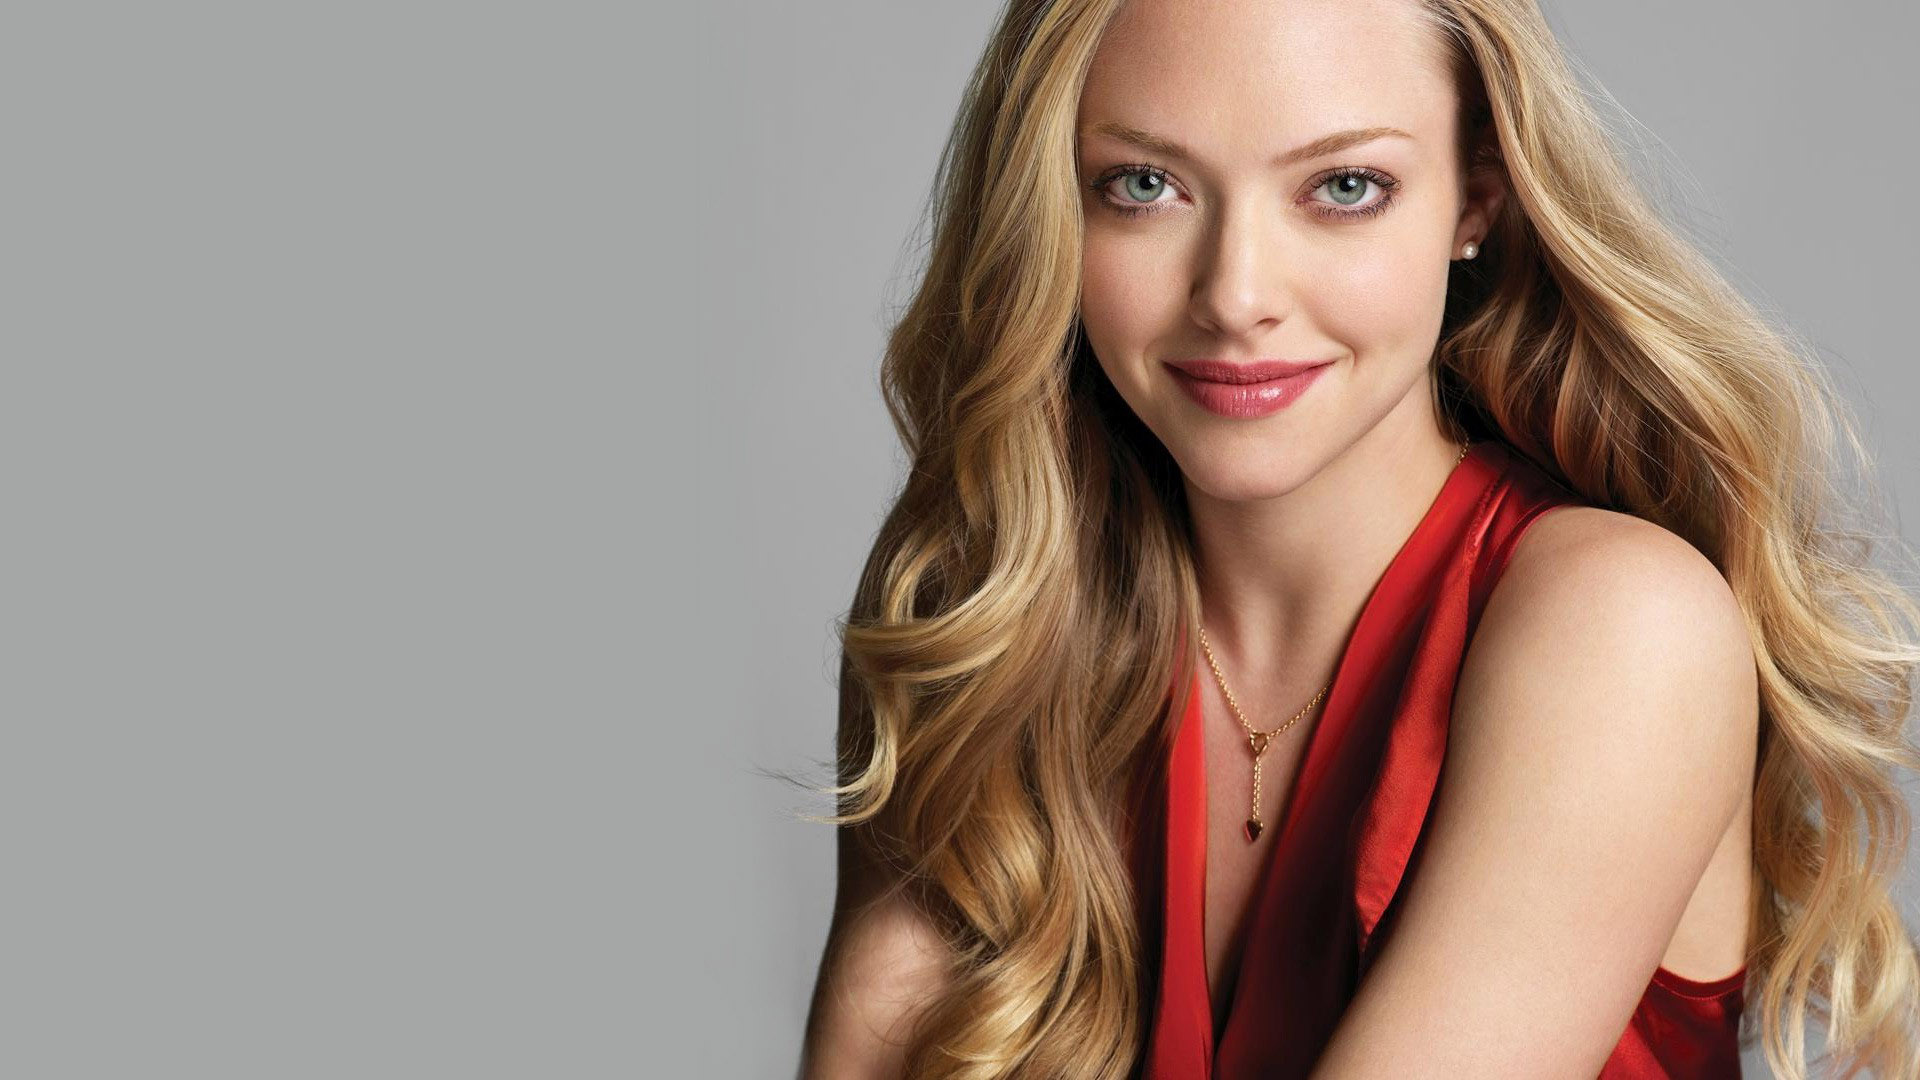 stunning amanda seyfried look hd download laptop free images